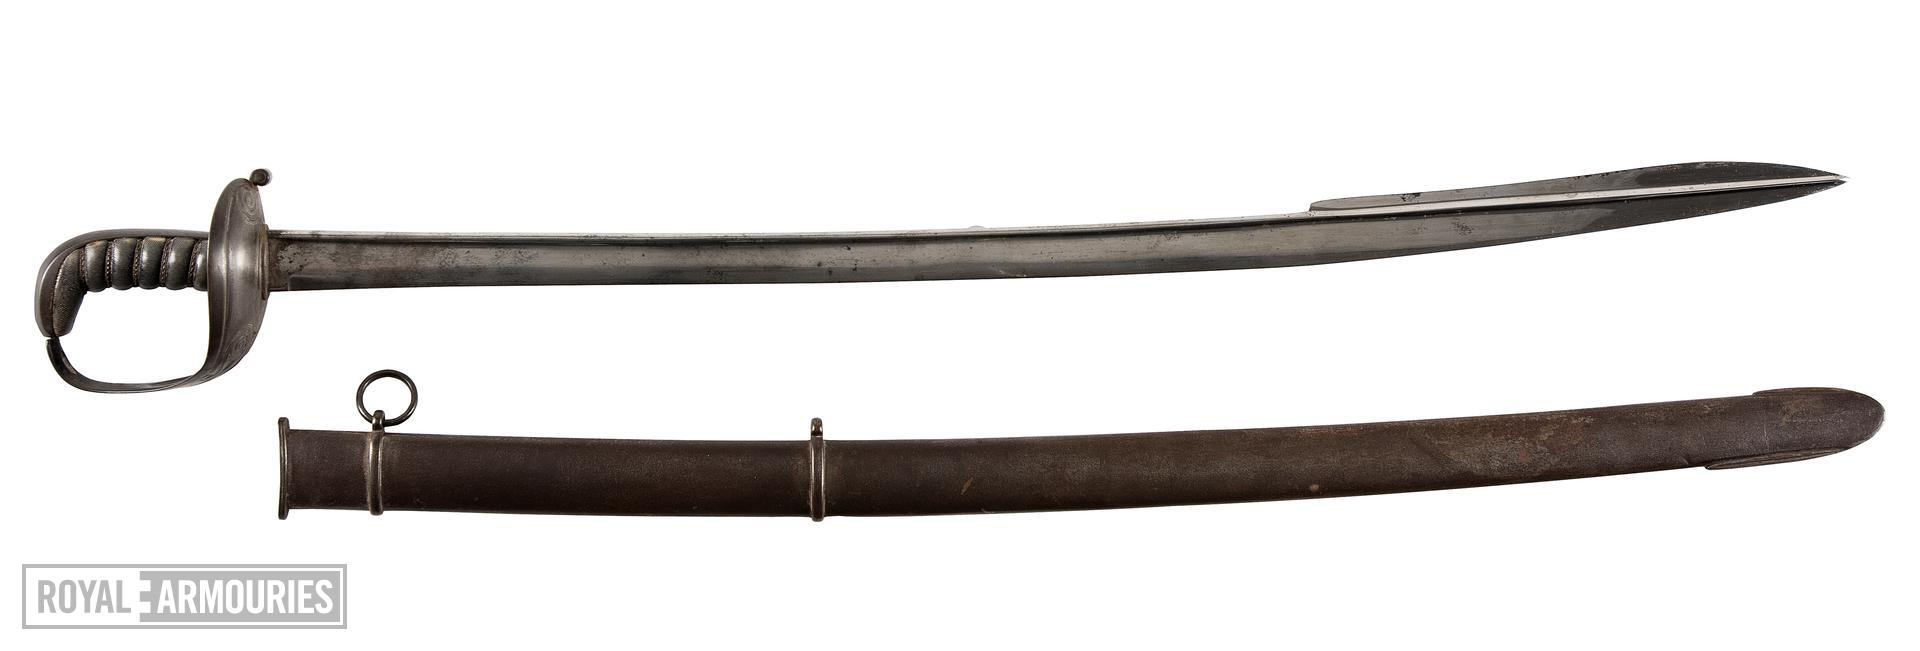 Officer's sword and scabbard, about 1815-1825, Britain (IX.2240)